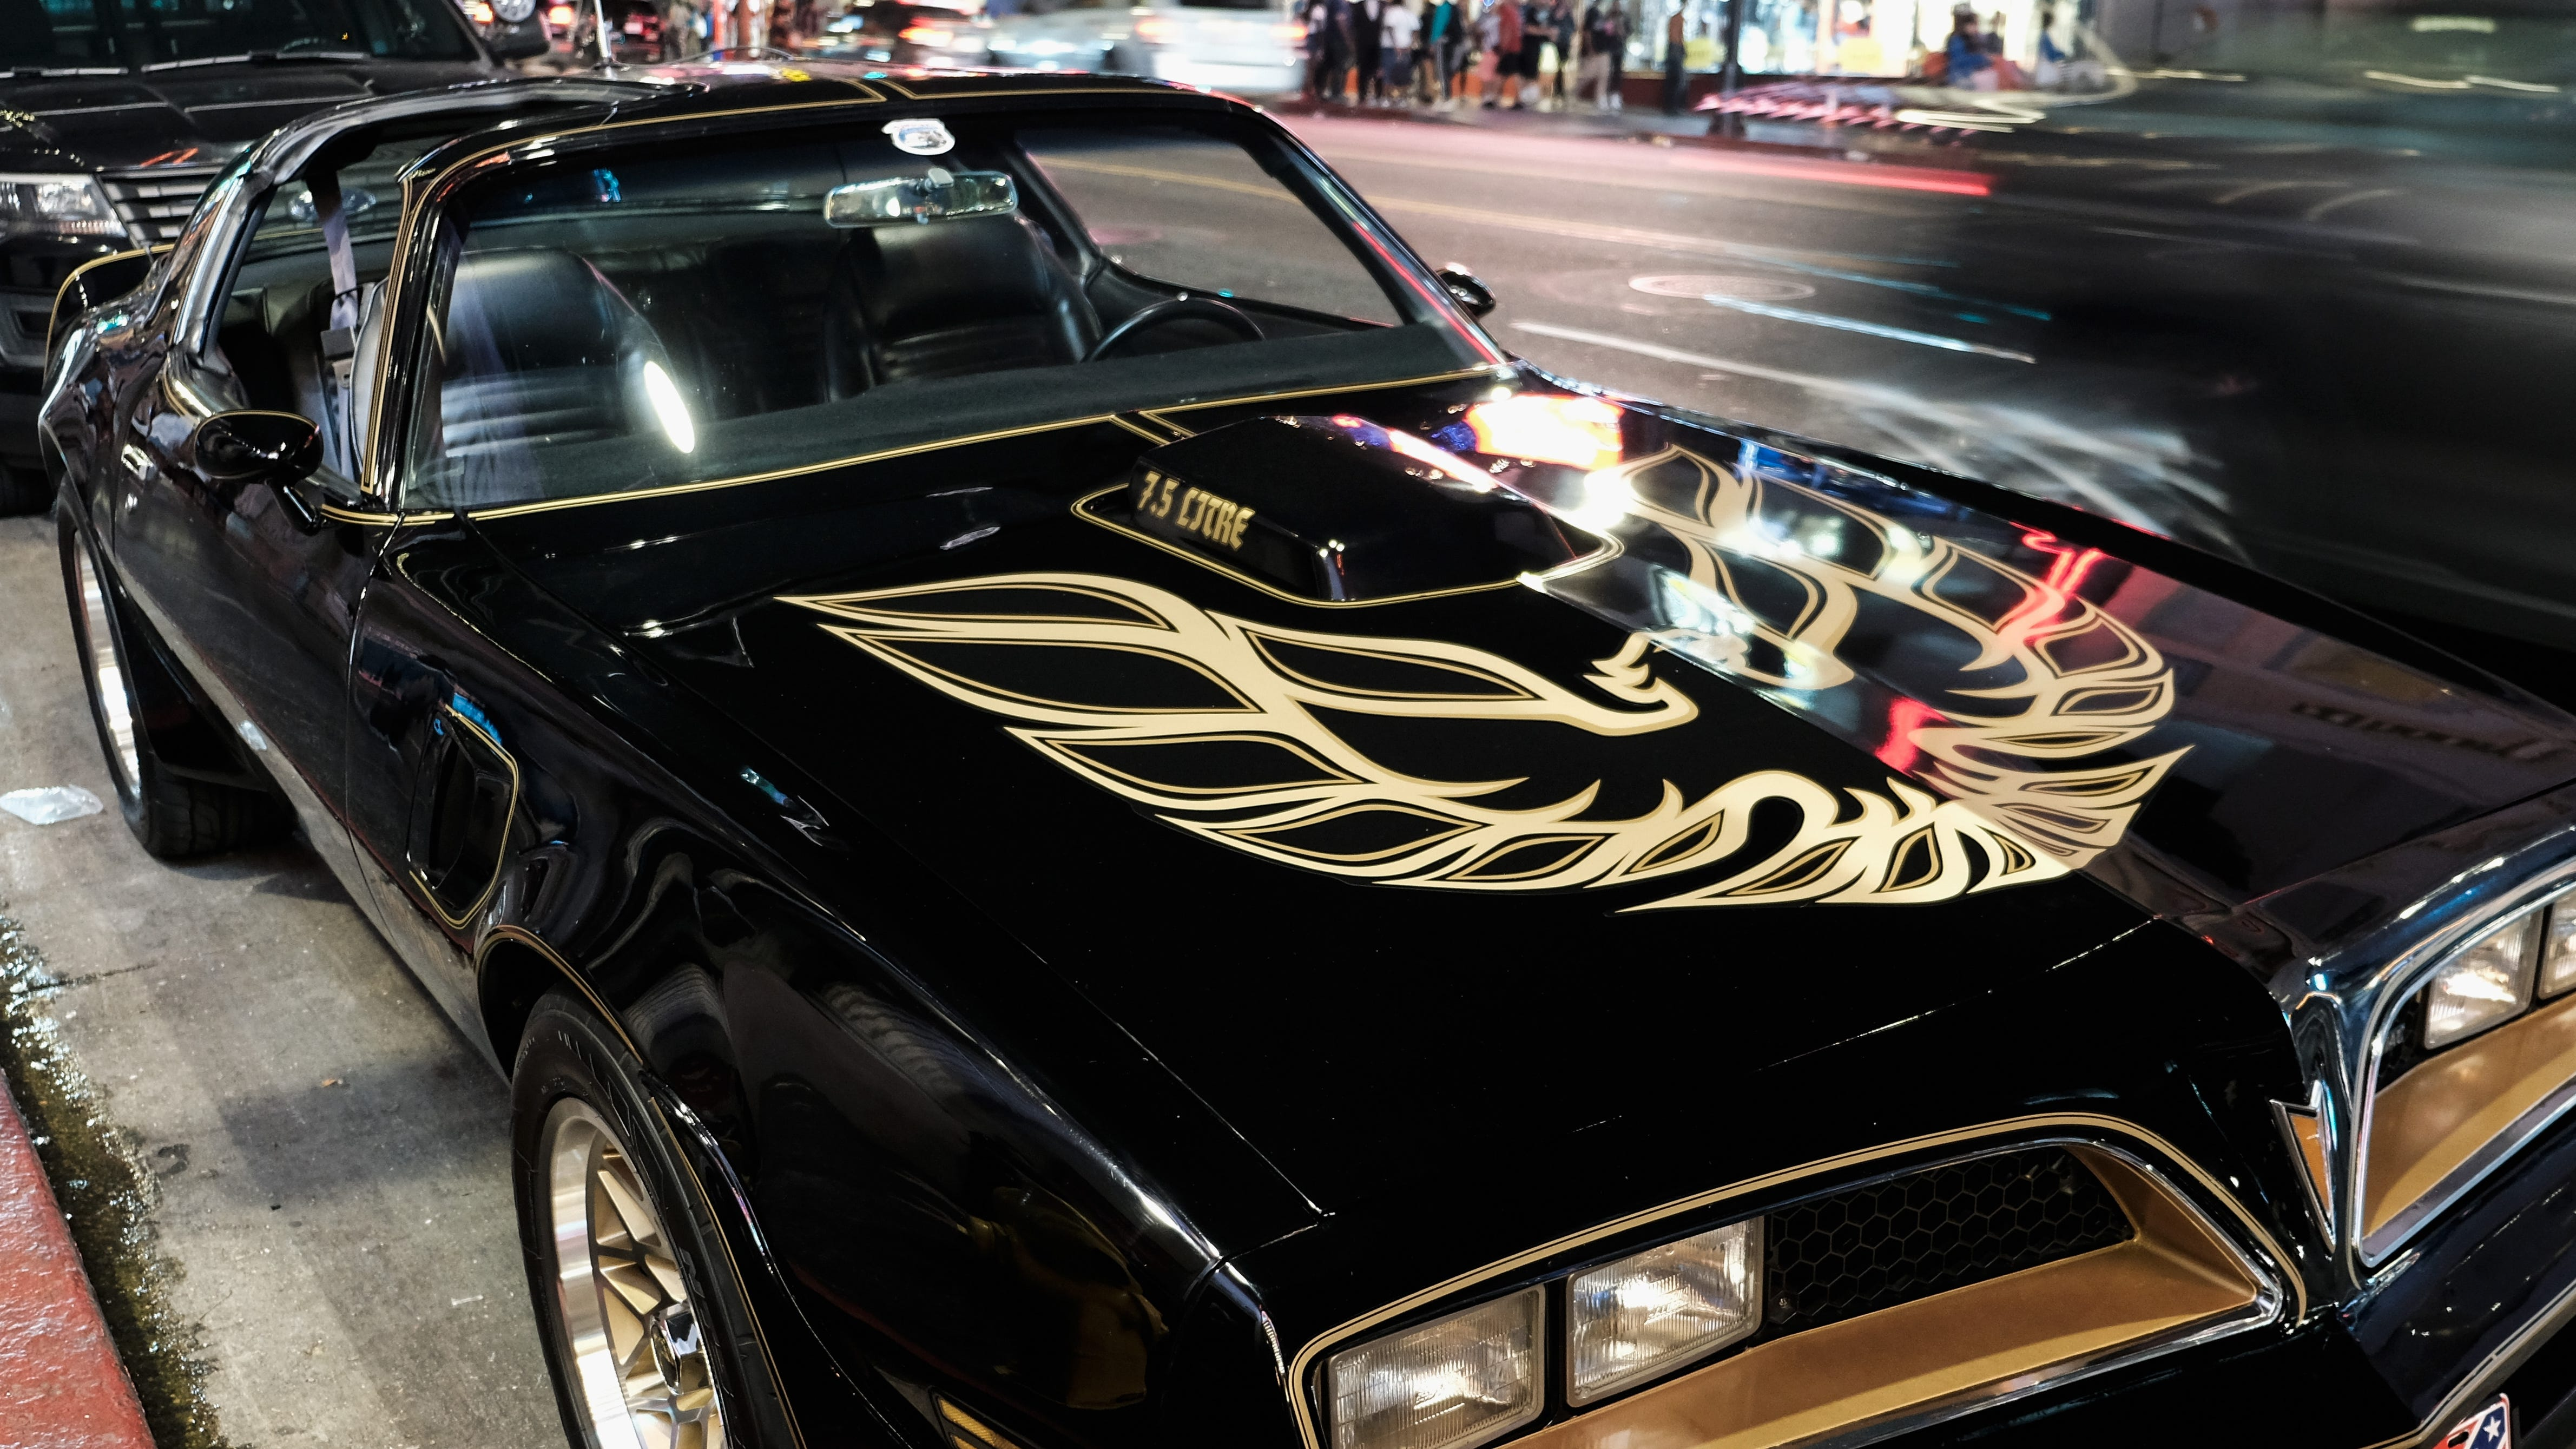 Image result for smokey and the bandit car